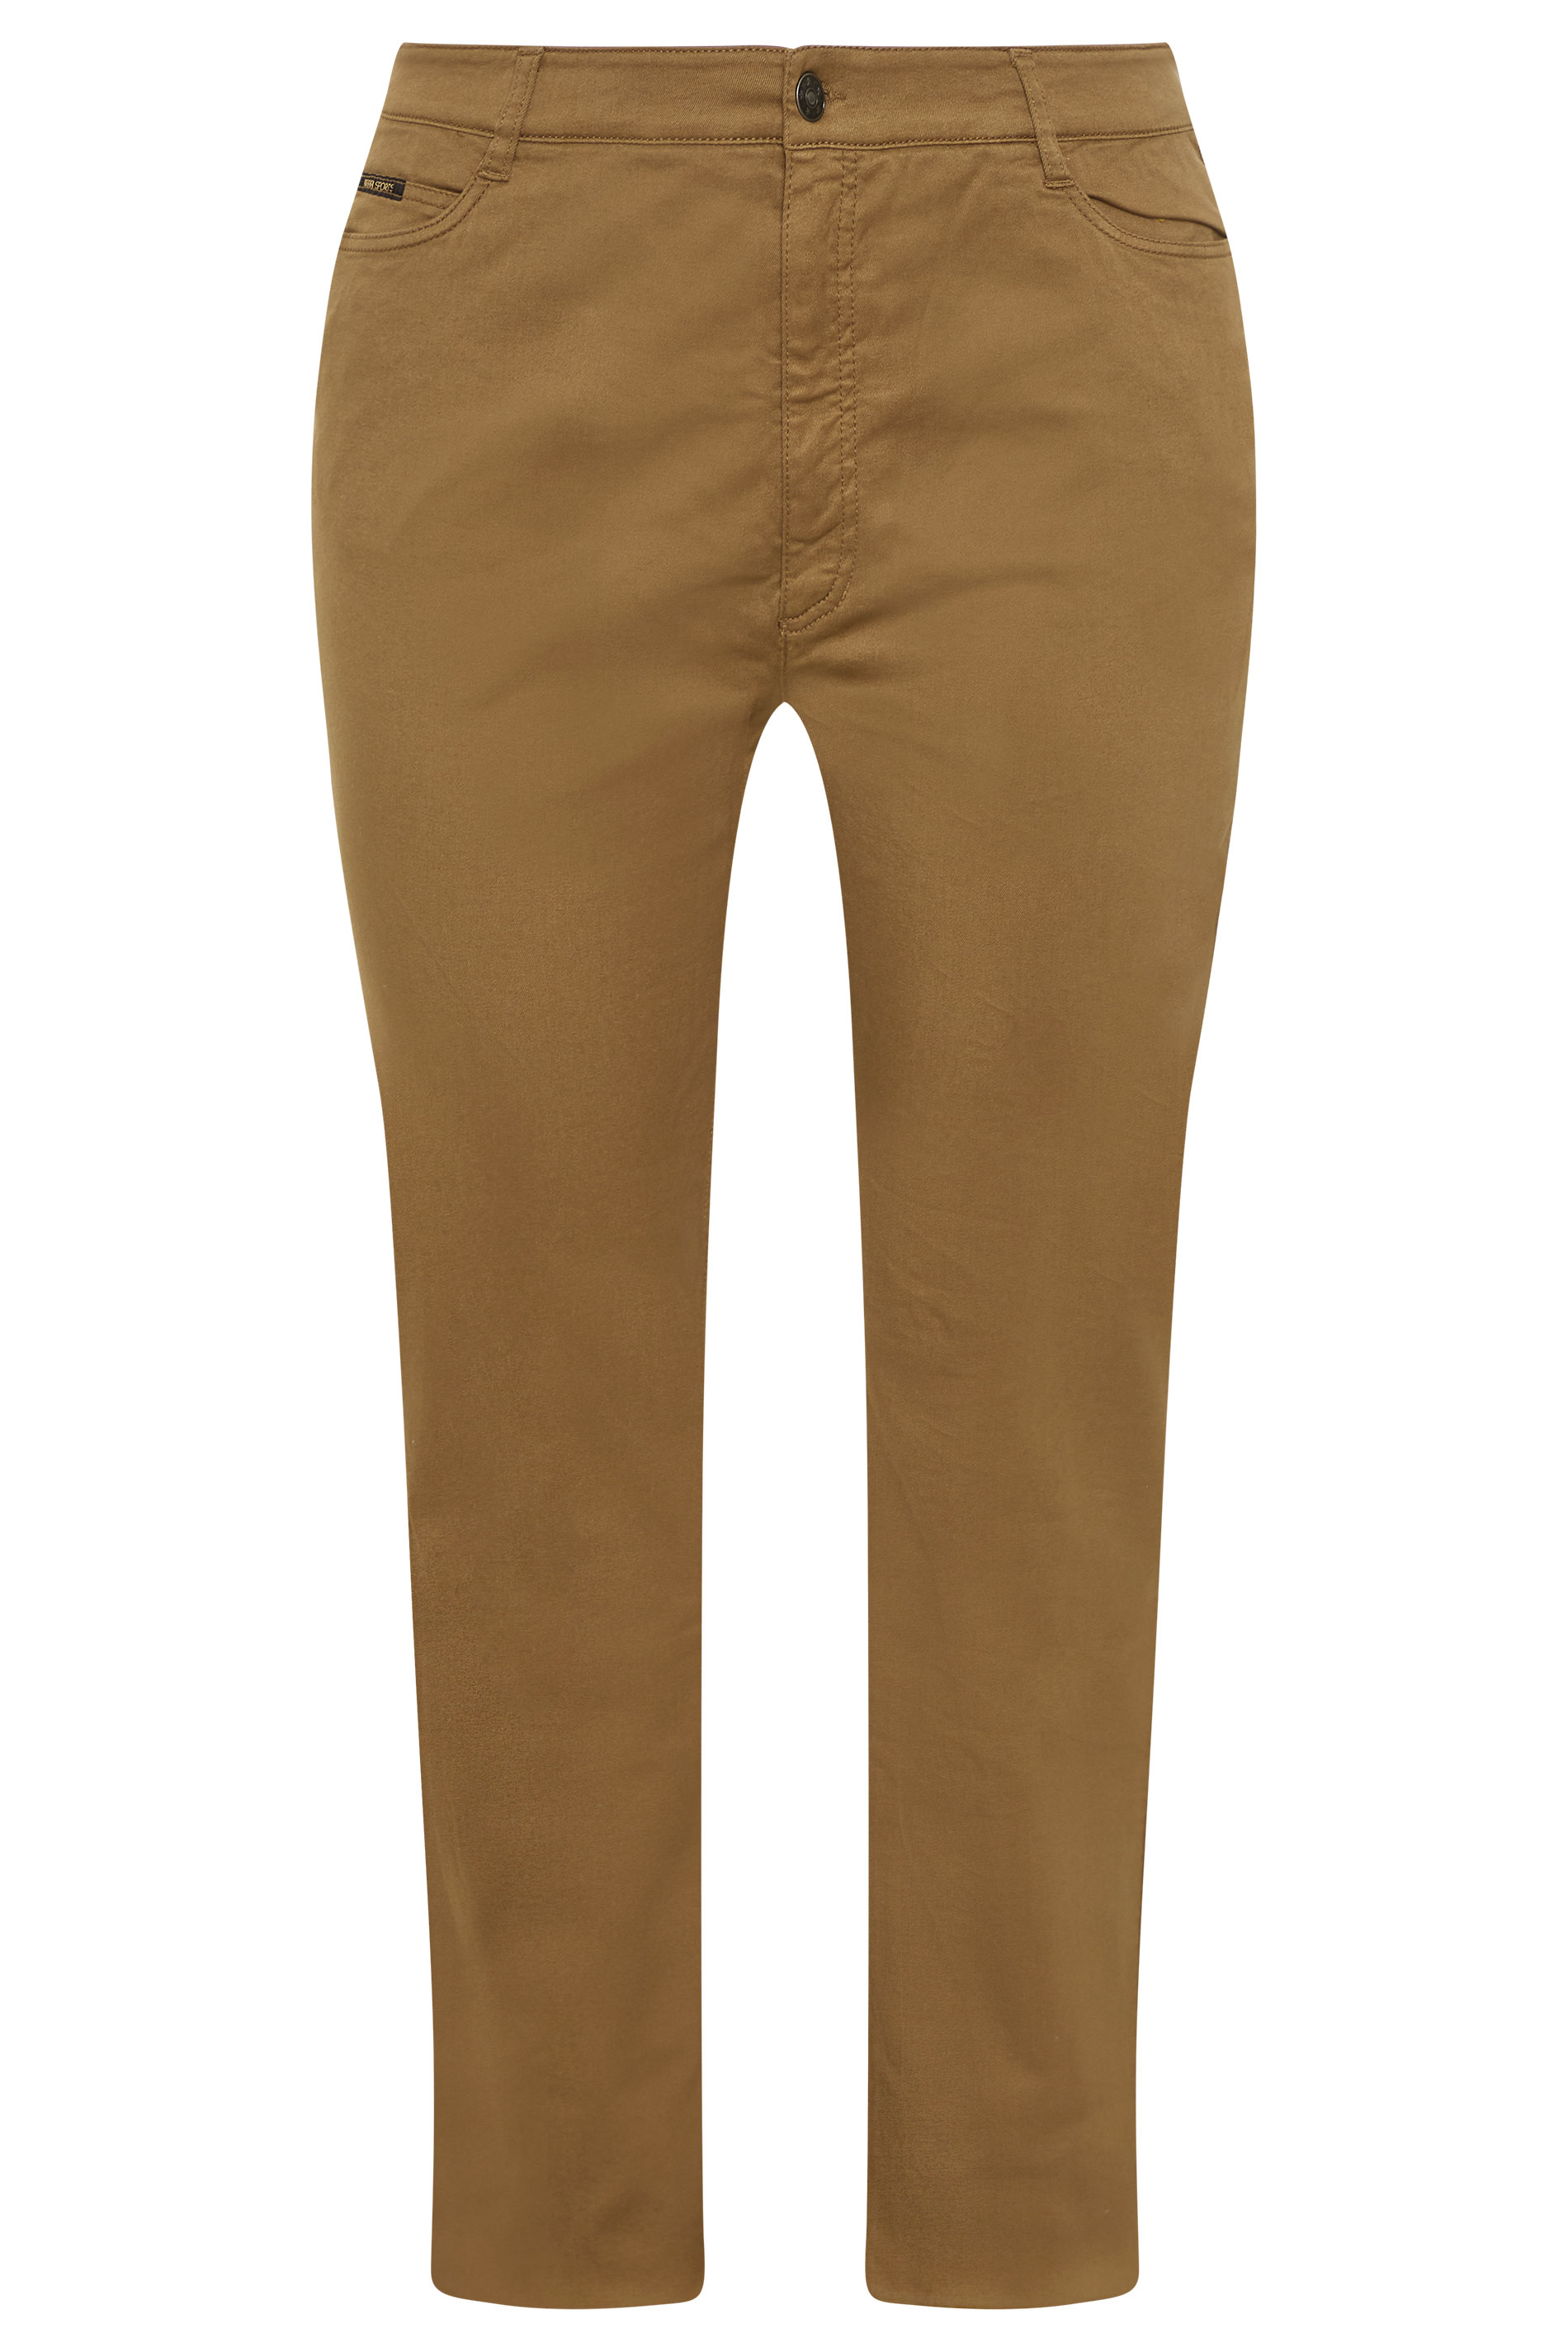 Camel Straight Cut Trousers